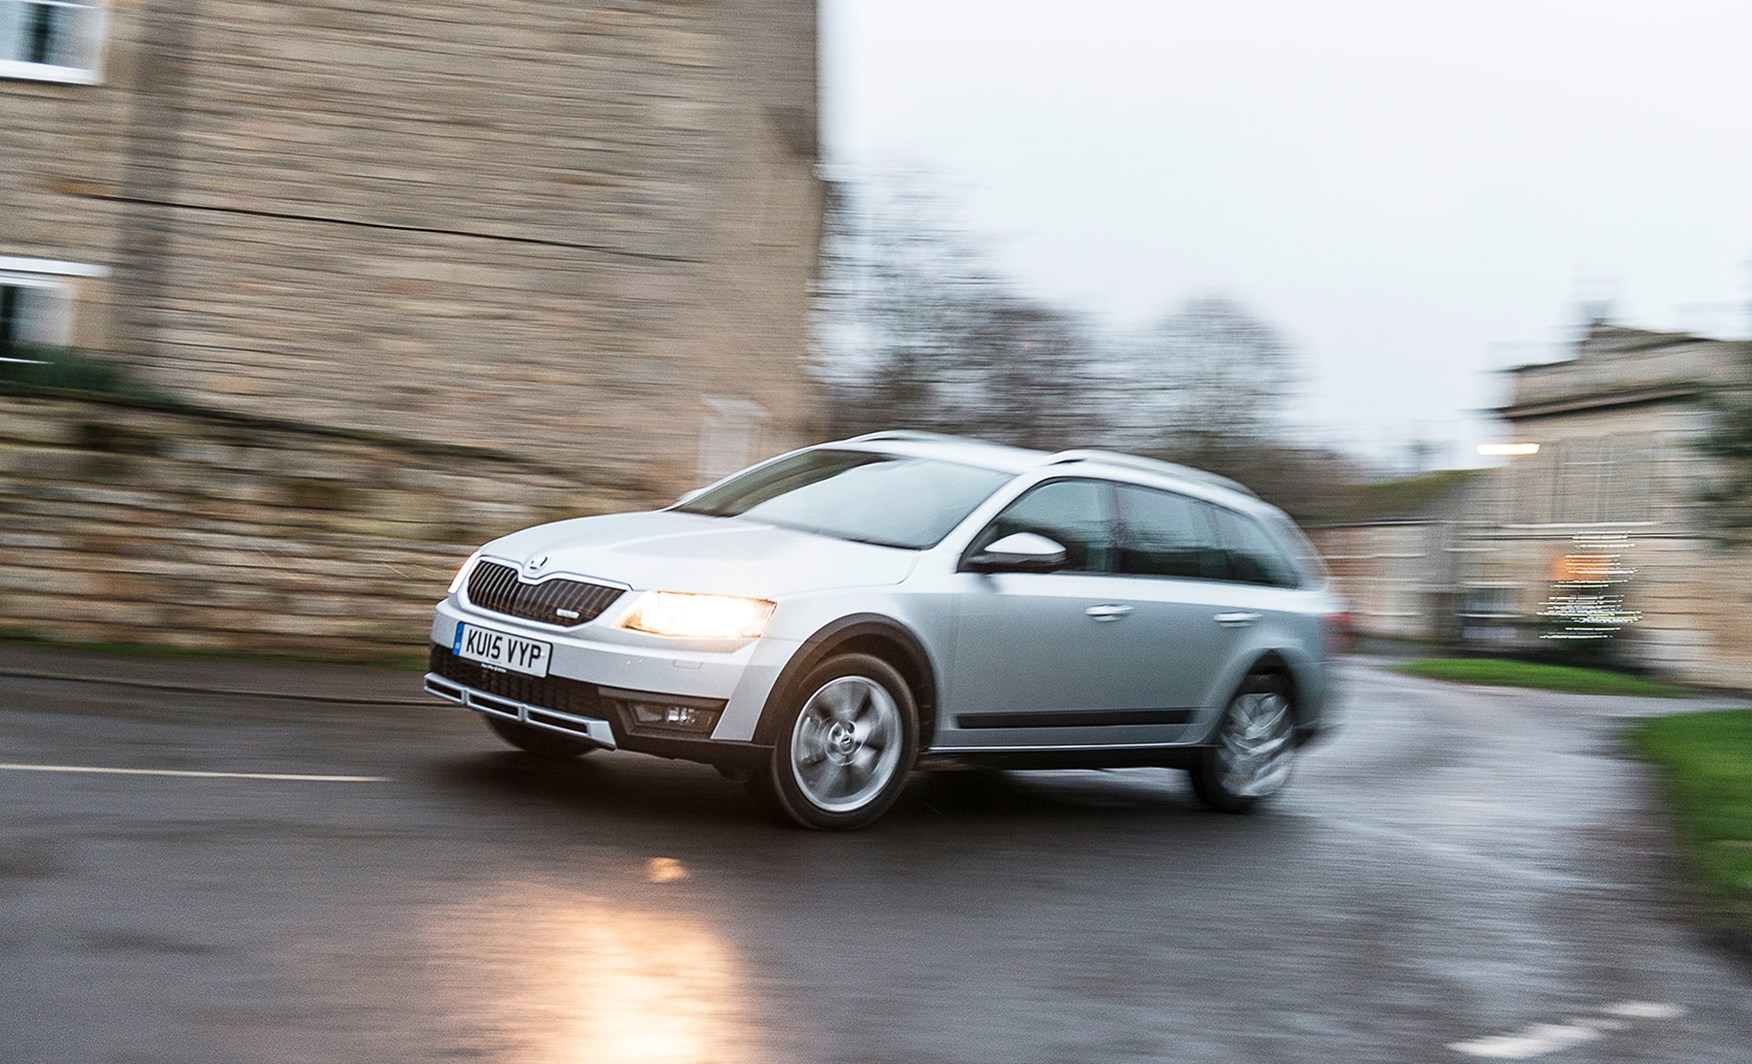 Group test Subaru Outback vs VW Passat Alltrack vs Skoda Octavia